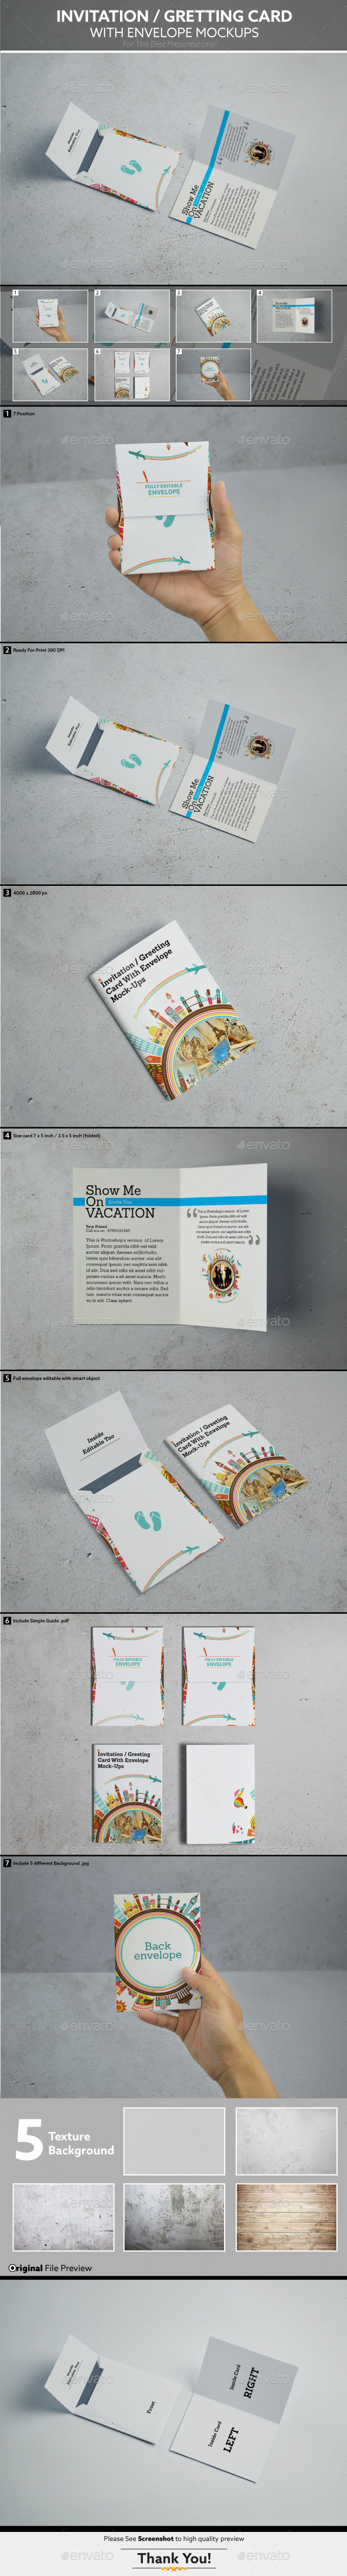 GraphicRiver Invitation Gretting Card With Envelope Mockups 9711908